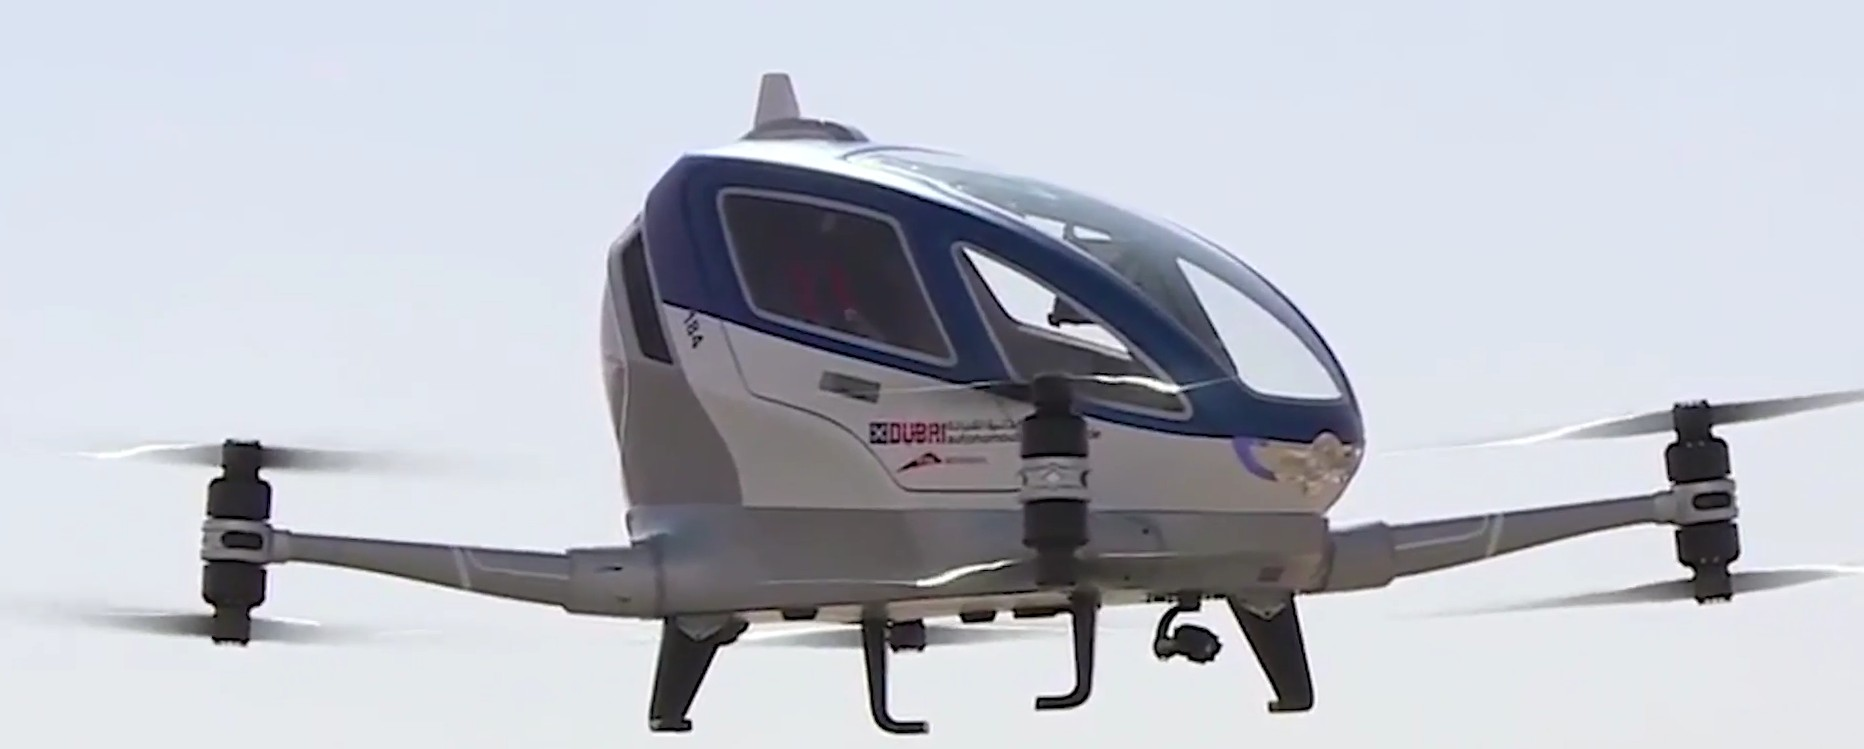 Dubai to offer flying taxi service using autonomous drones?